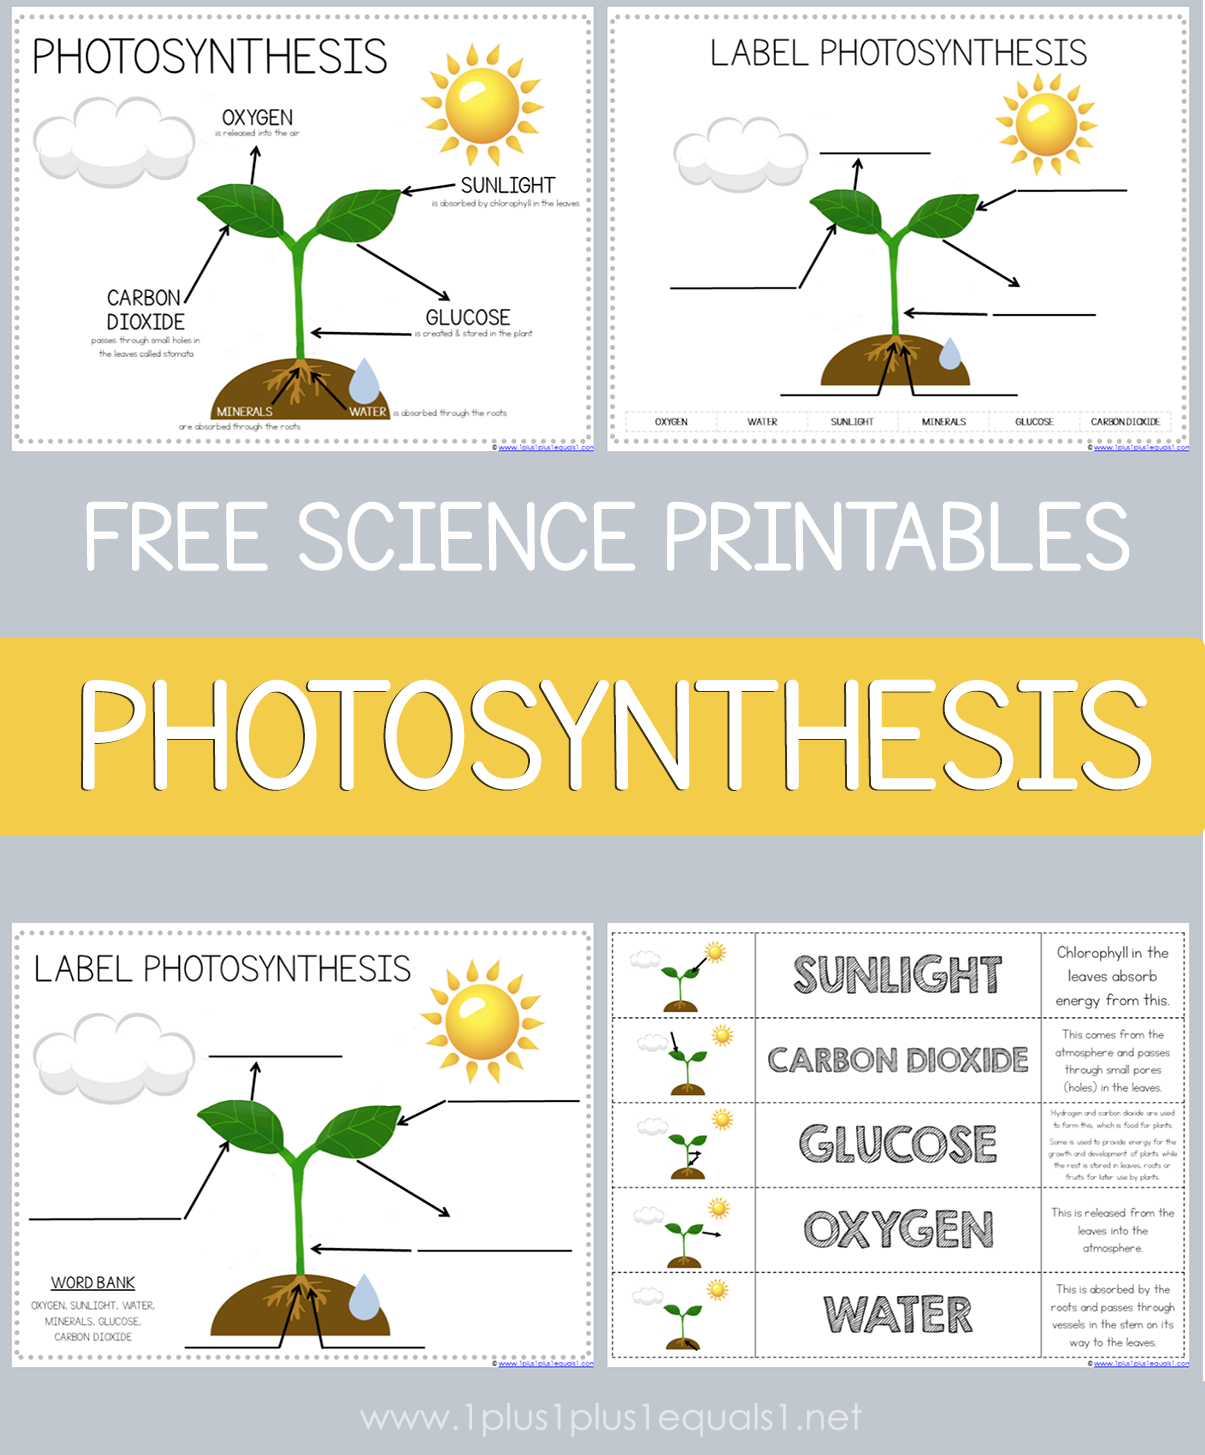 Photosynthesis Printables For Kids Science Printables Free Science Printables Learning Science [ 1455 x 1205 Pixel ]